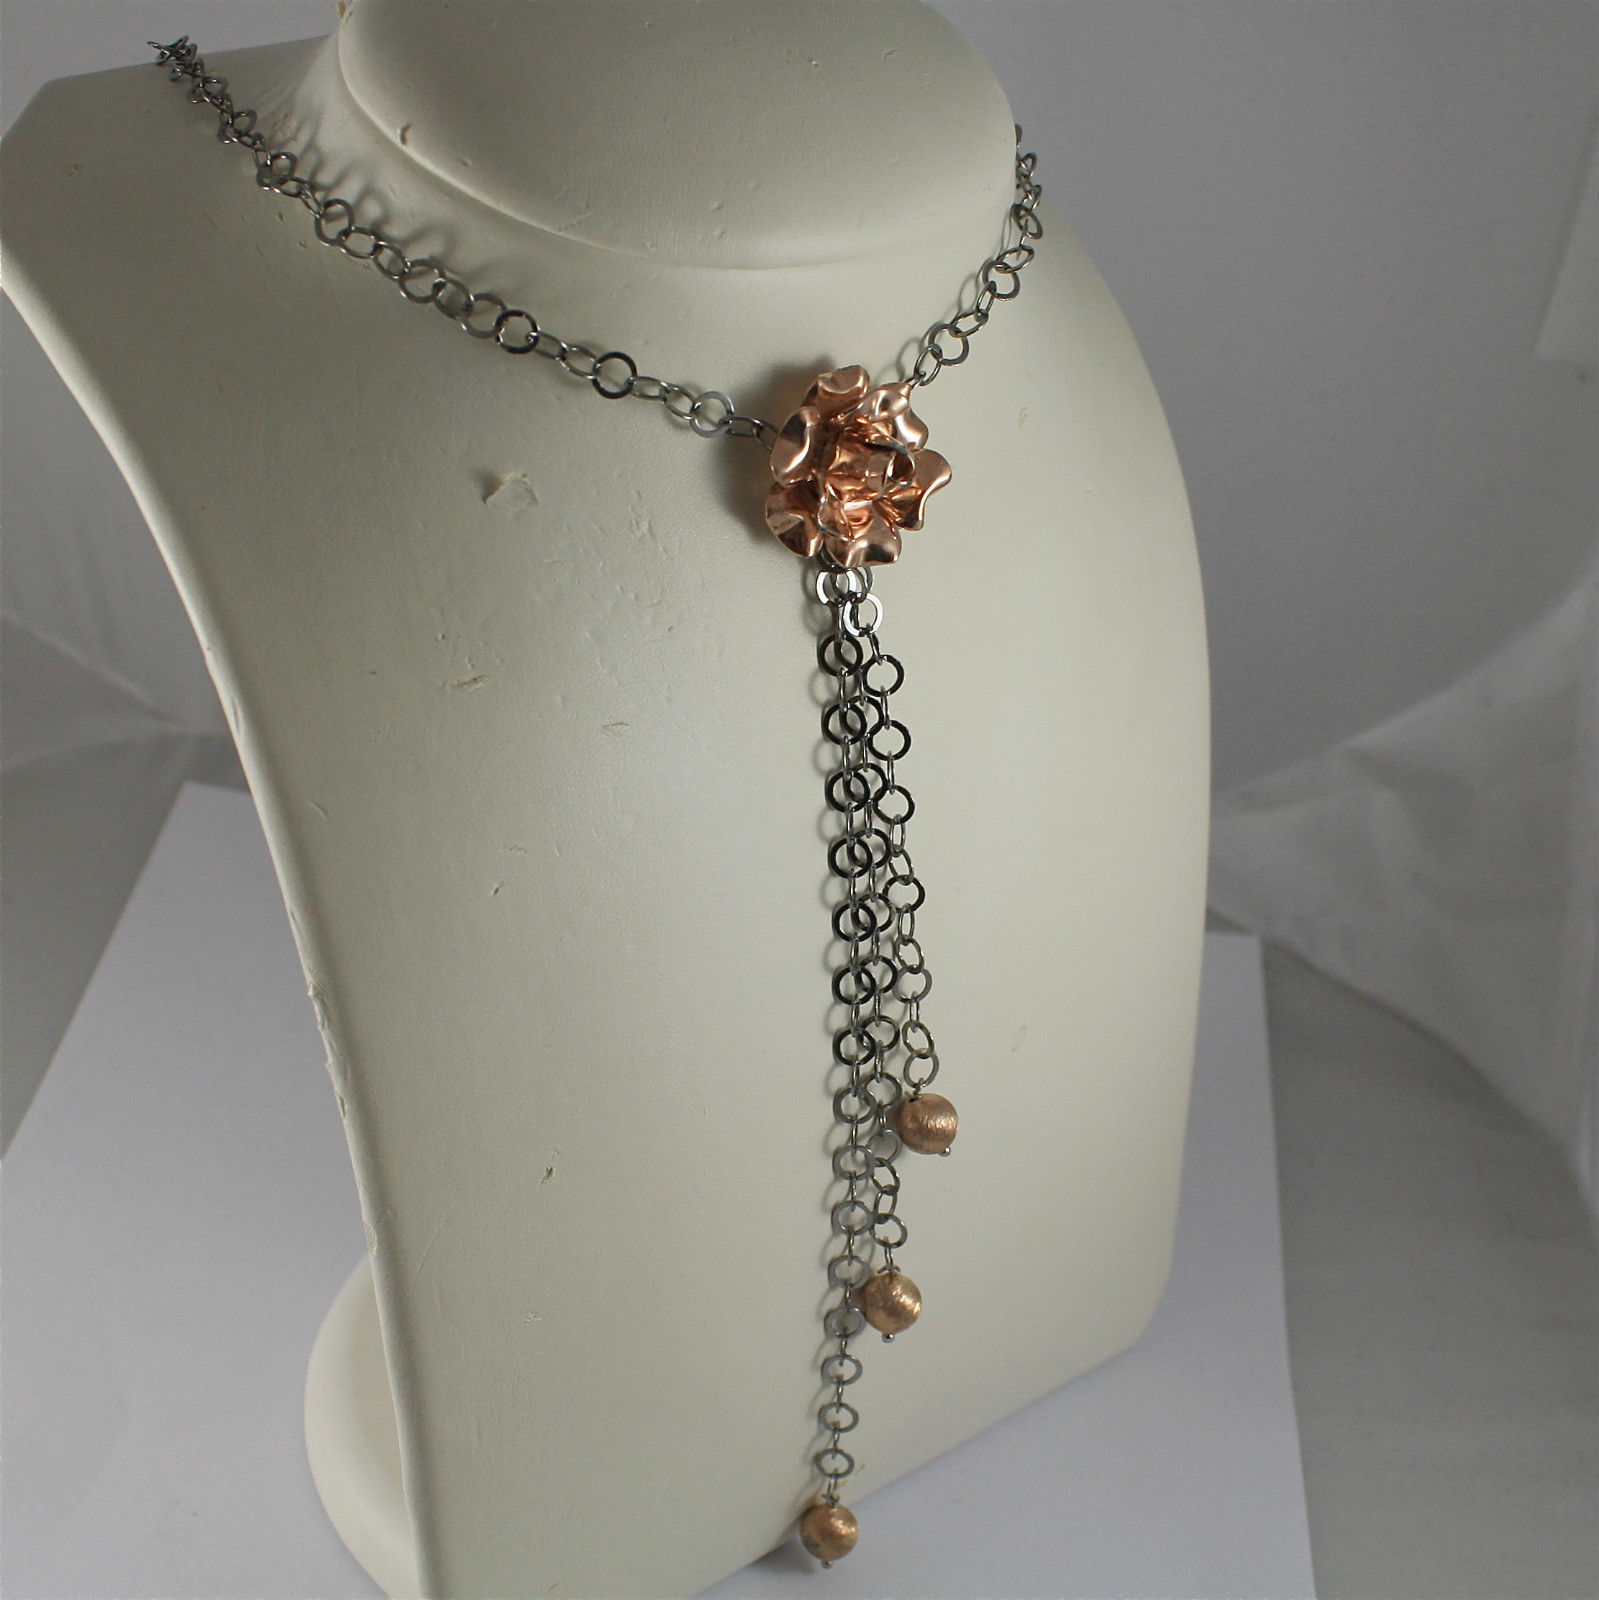 .925 RHODIUM SILVER NECKLACE, SCARF, BURNISHED CHAIN, CENTRAL ROSE, SATIN BALLS